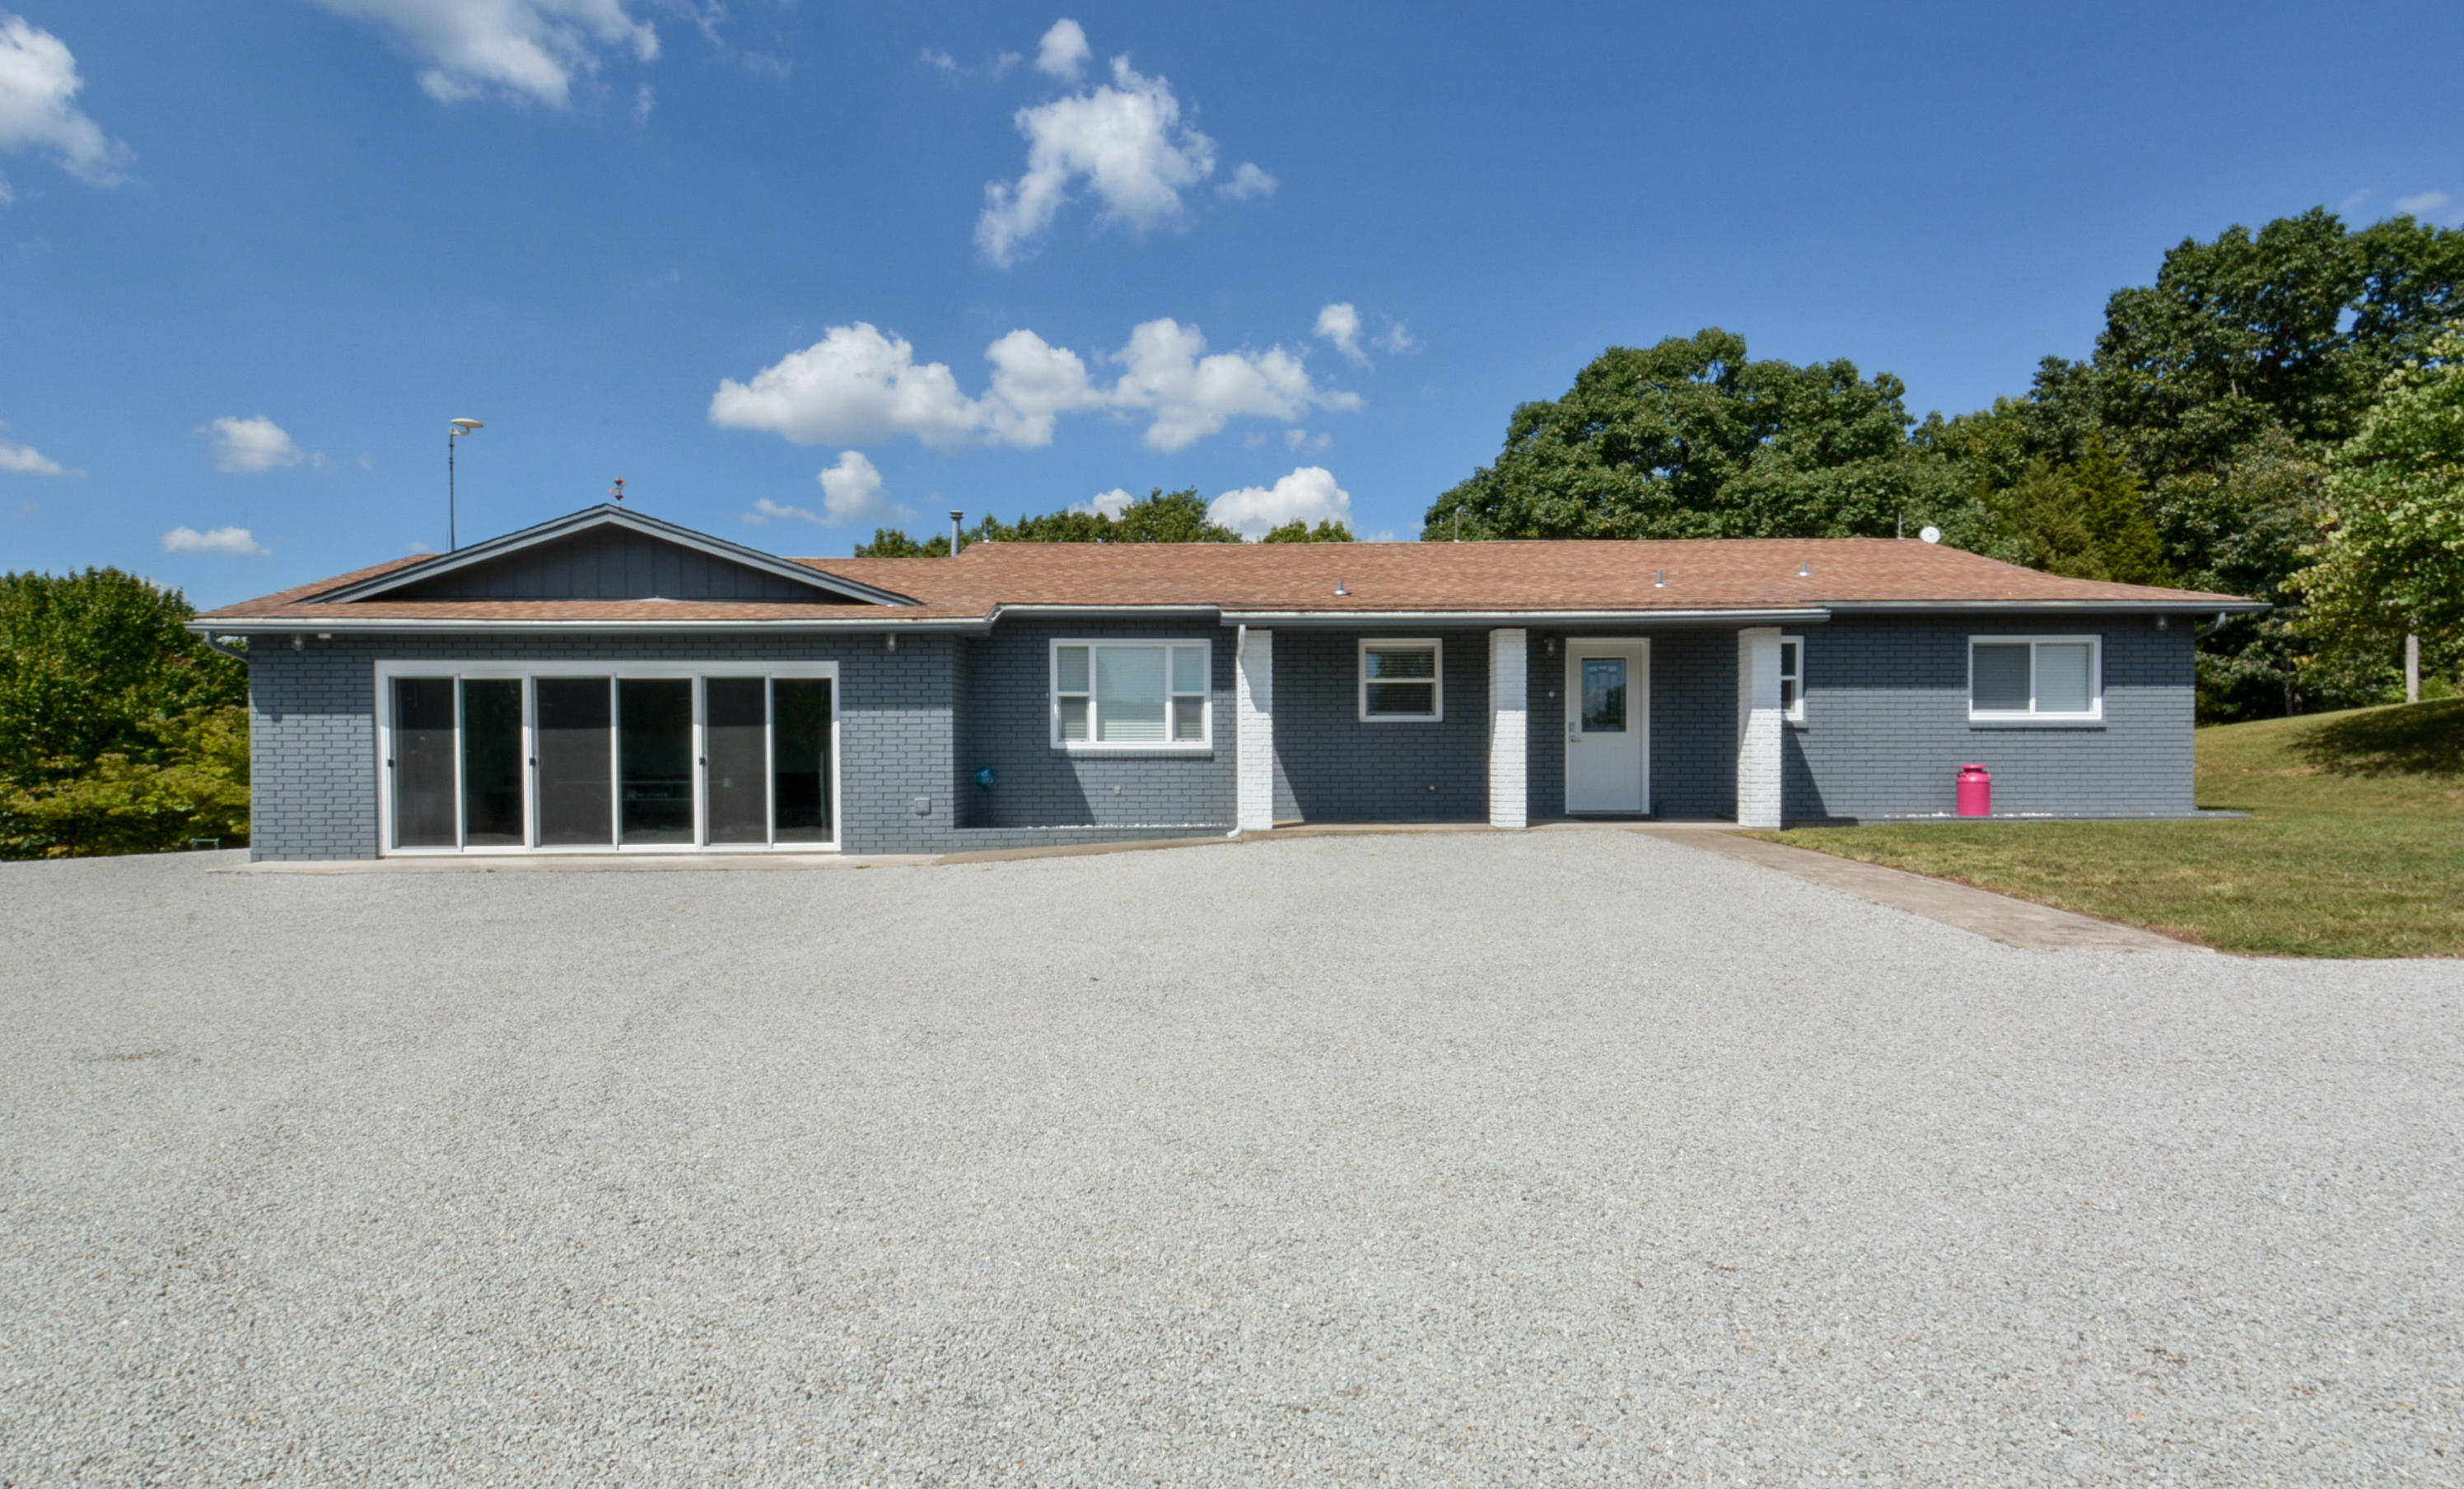 1224 Us Hwy 65 Walnut Shade, MO 65771